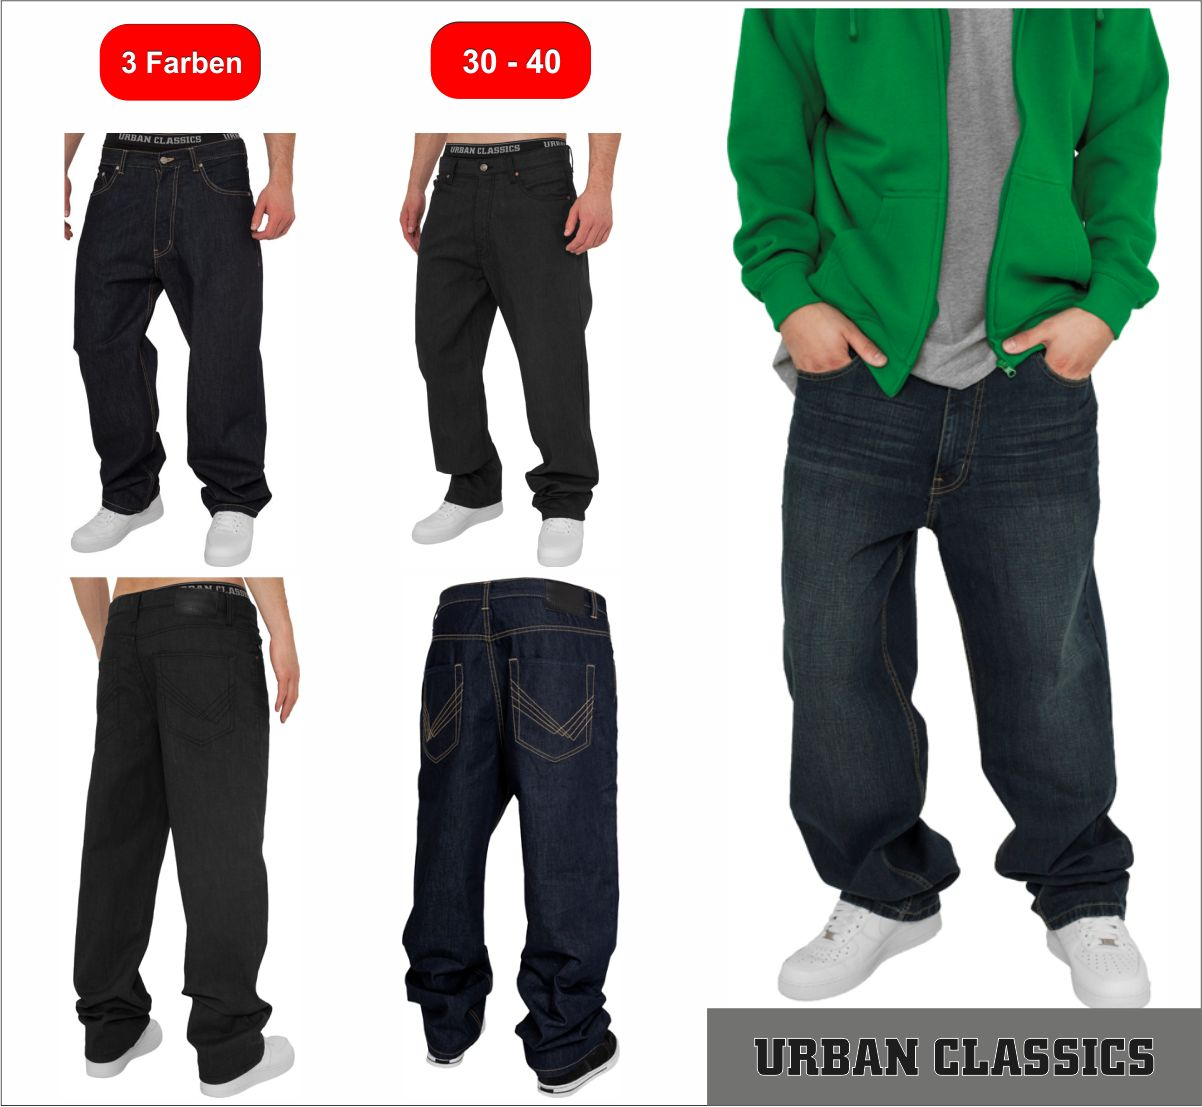 urban classics baggy fit jeans herren jeans hip hop jeans pant. Black Bedroom Furniture Sets. Home Design Ideas